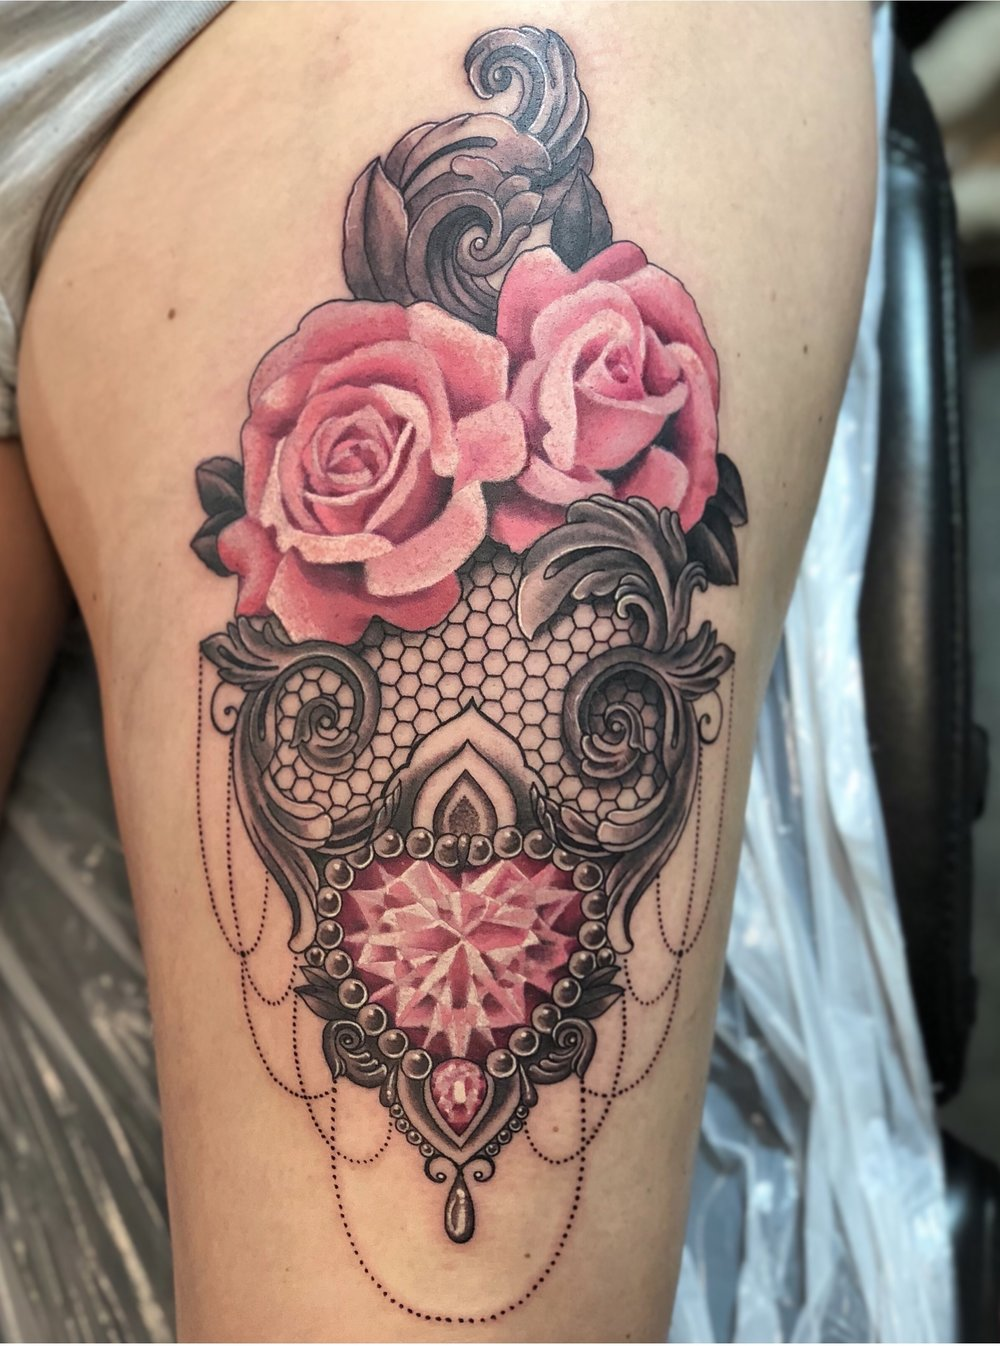 rose-tattoo-colchester-tattooist-black-hope-tattoo-gem-lace-filagree.jpg